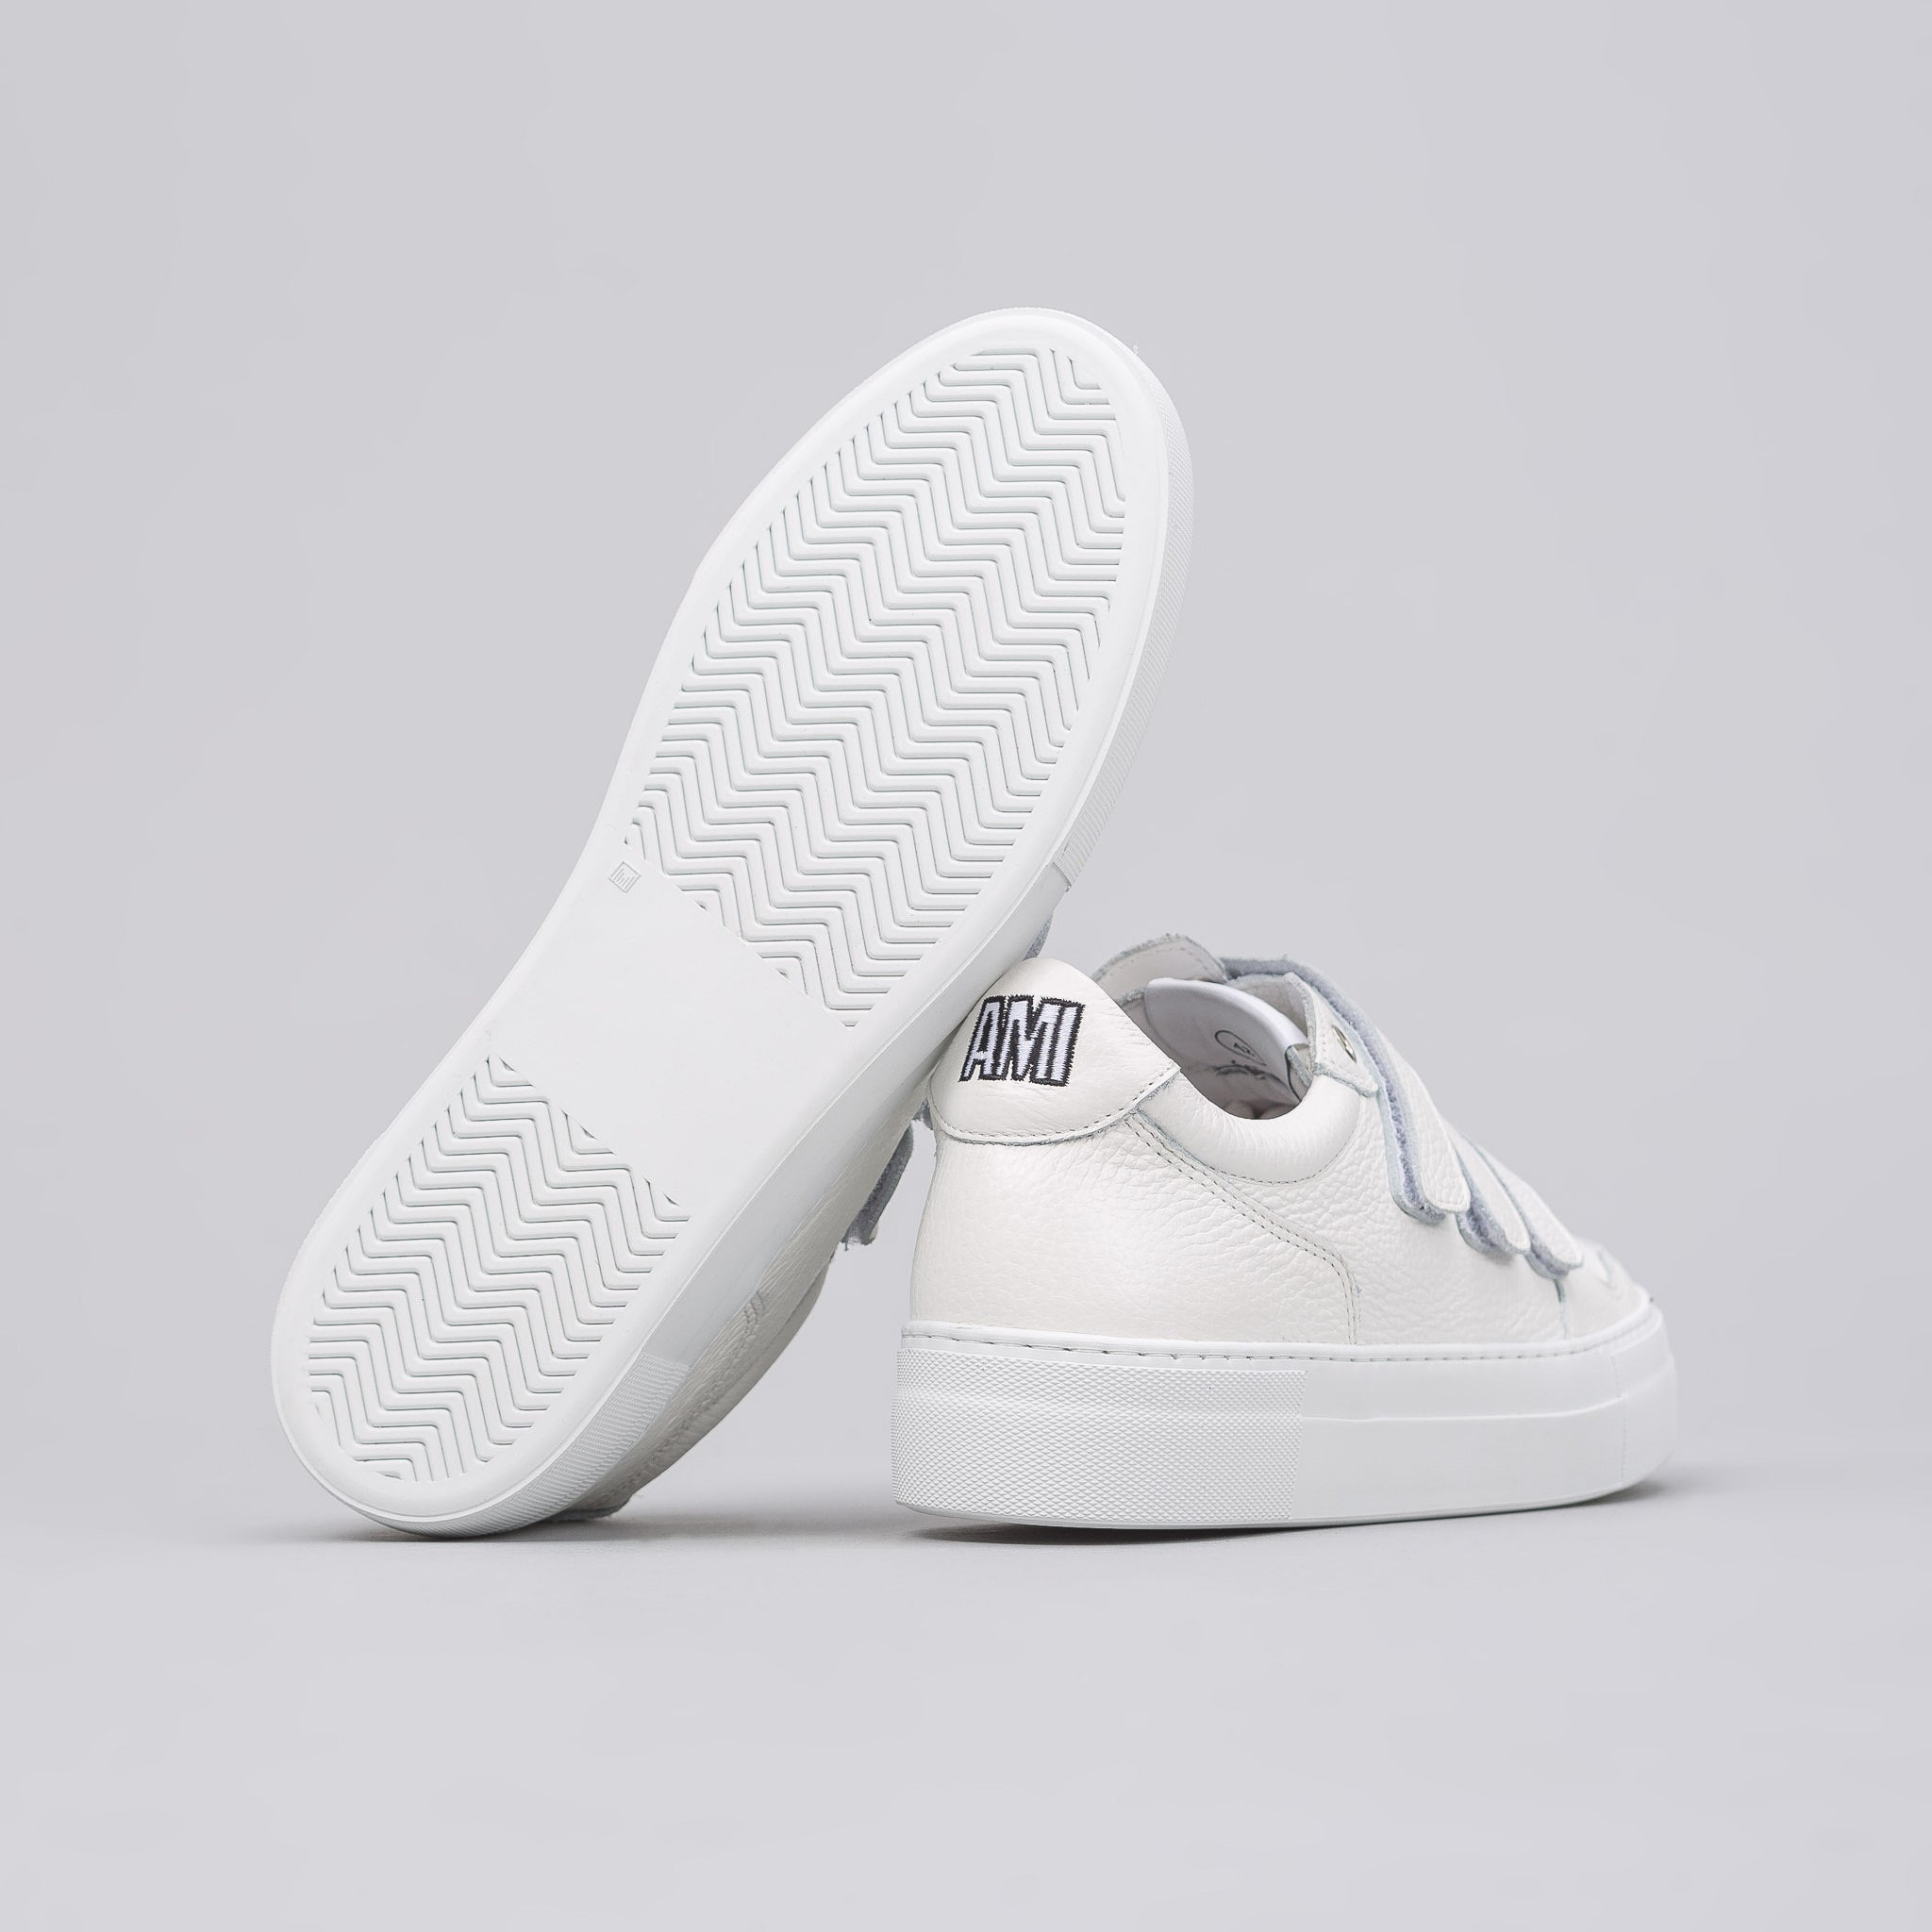 3-Strap Leather Sneaker in White